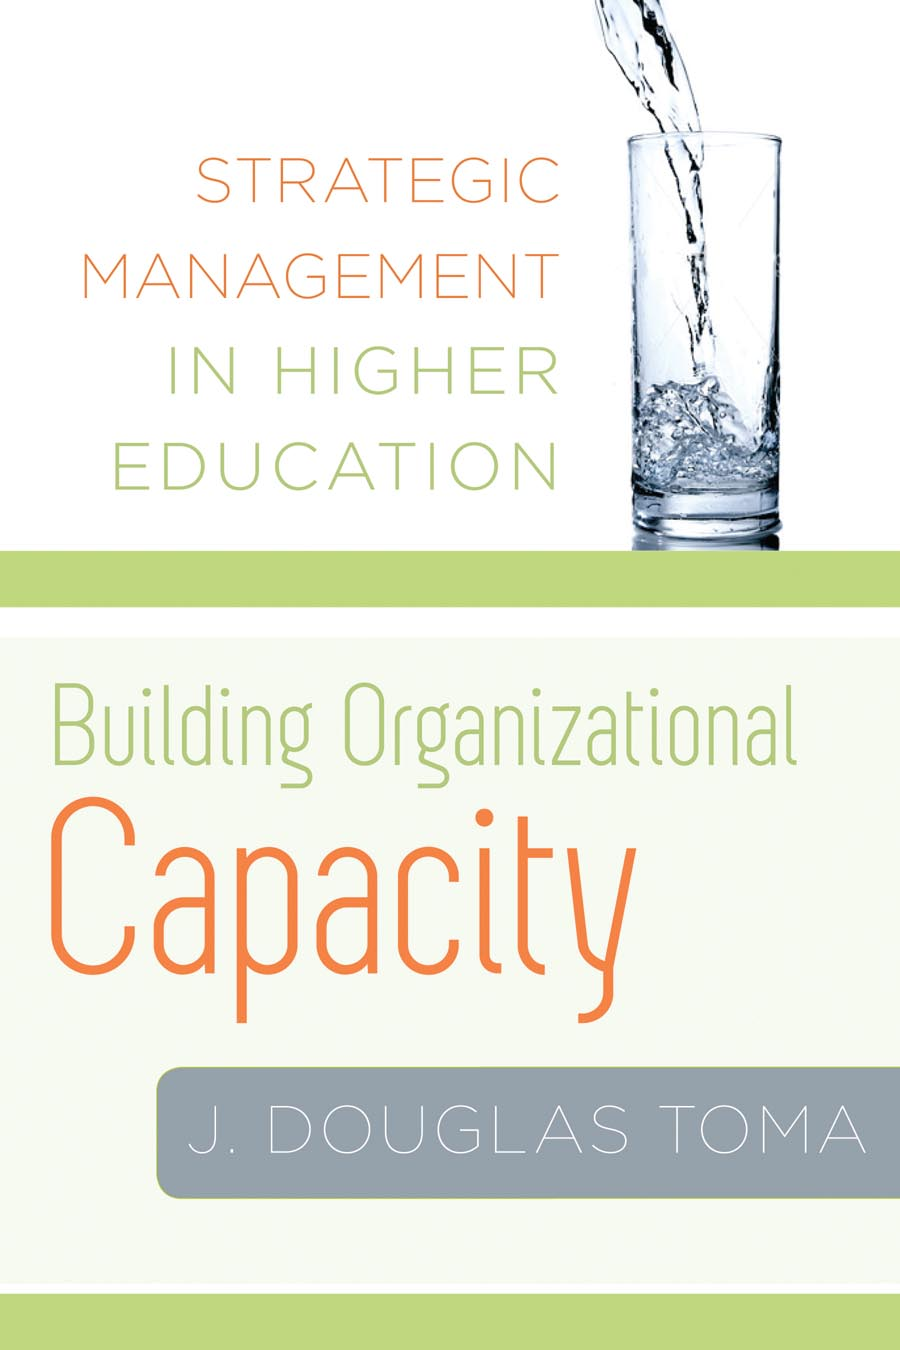 цены Building Organizational Capacity – Strategic Management in Higher Education